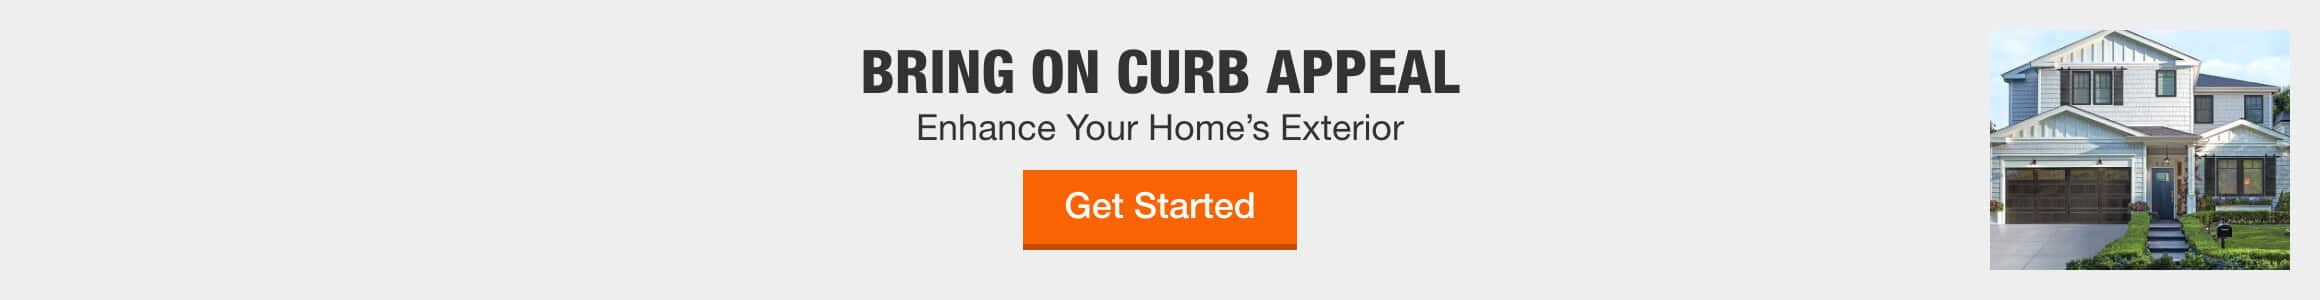 BRING ON CURB APPEAL - Enhance Your Home's Exterior > Get Started